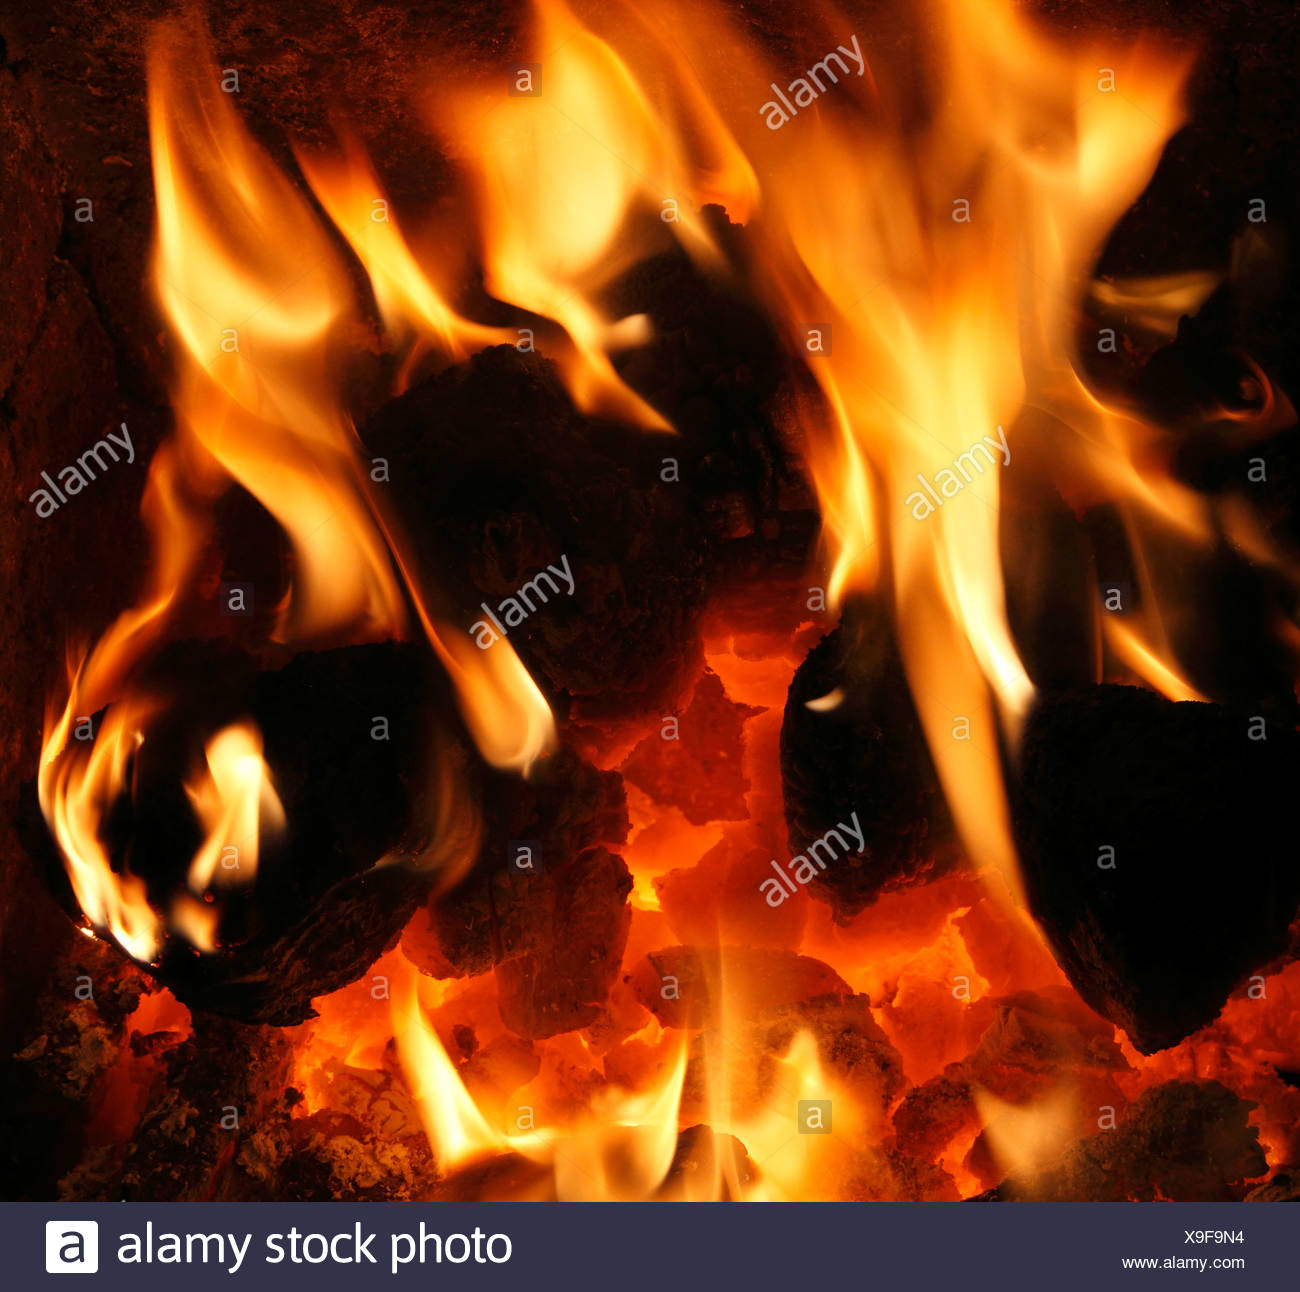 hight resolution of solid fuel domestic coal fire burning flame flames heart fireside heat energy power fires warmth warm home fires